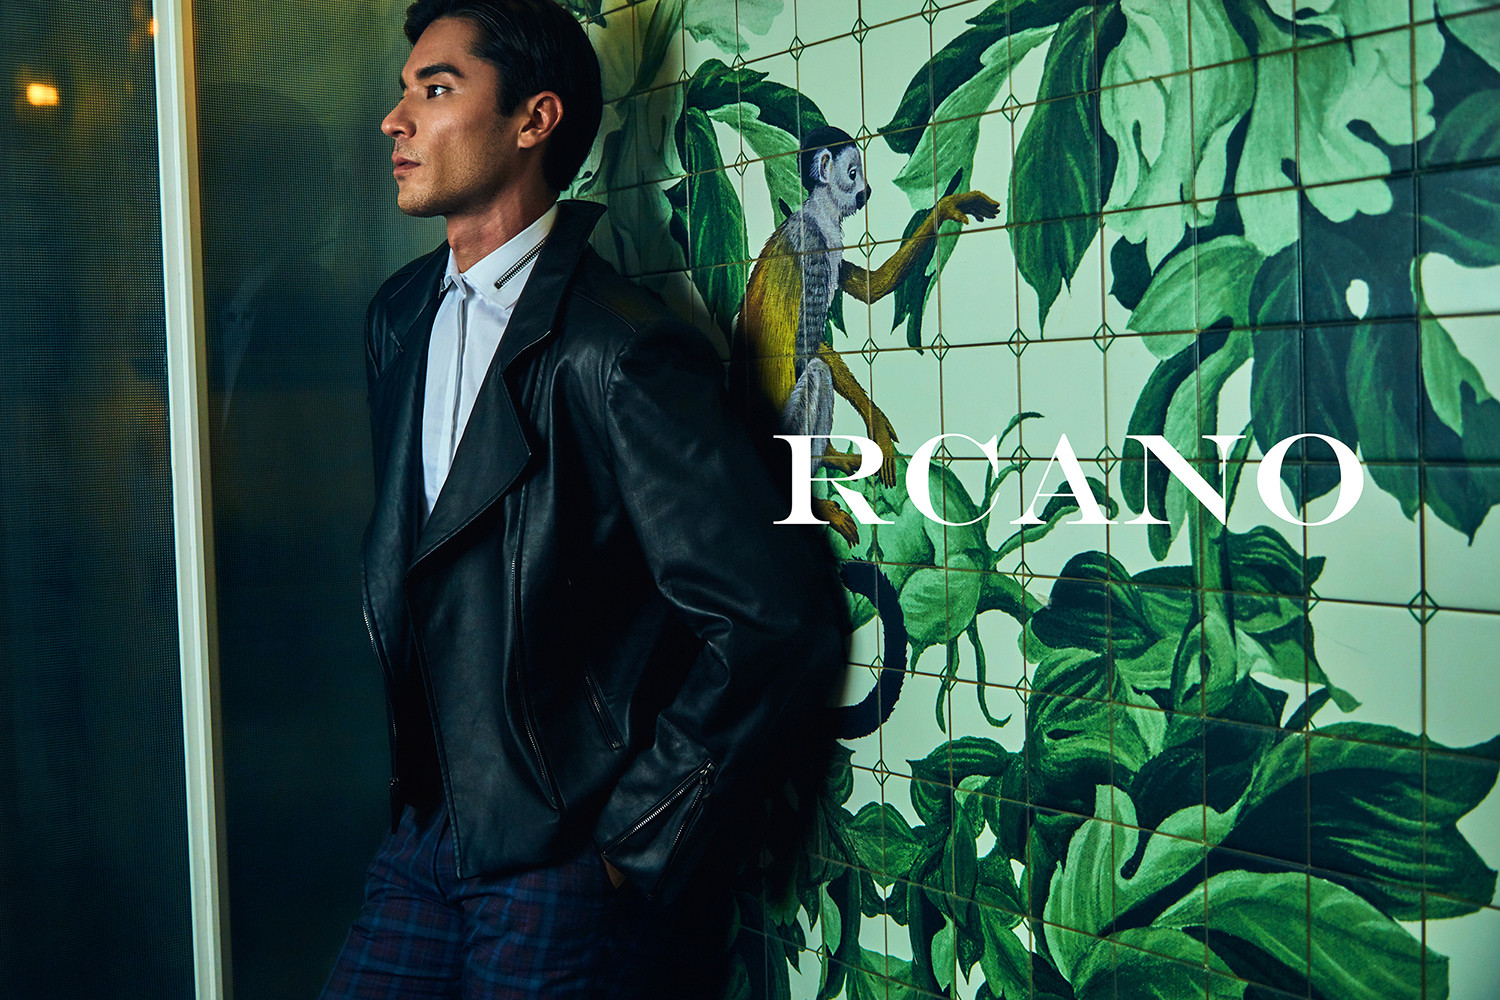 RCANO_FW19 CAMPAIGN LOW-RES_LOGO_5.jpg